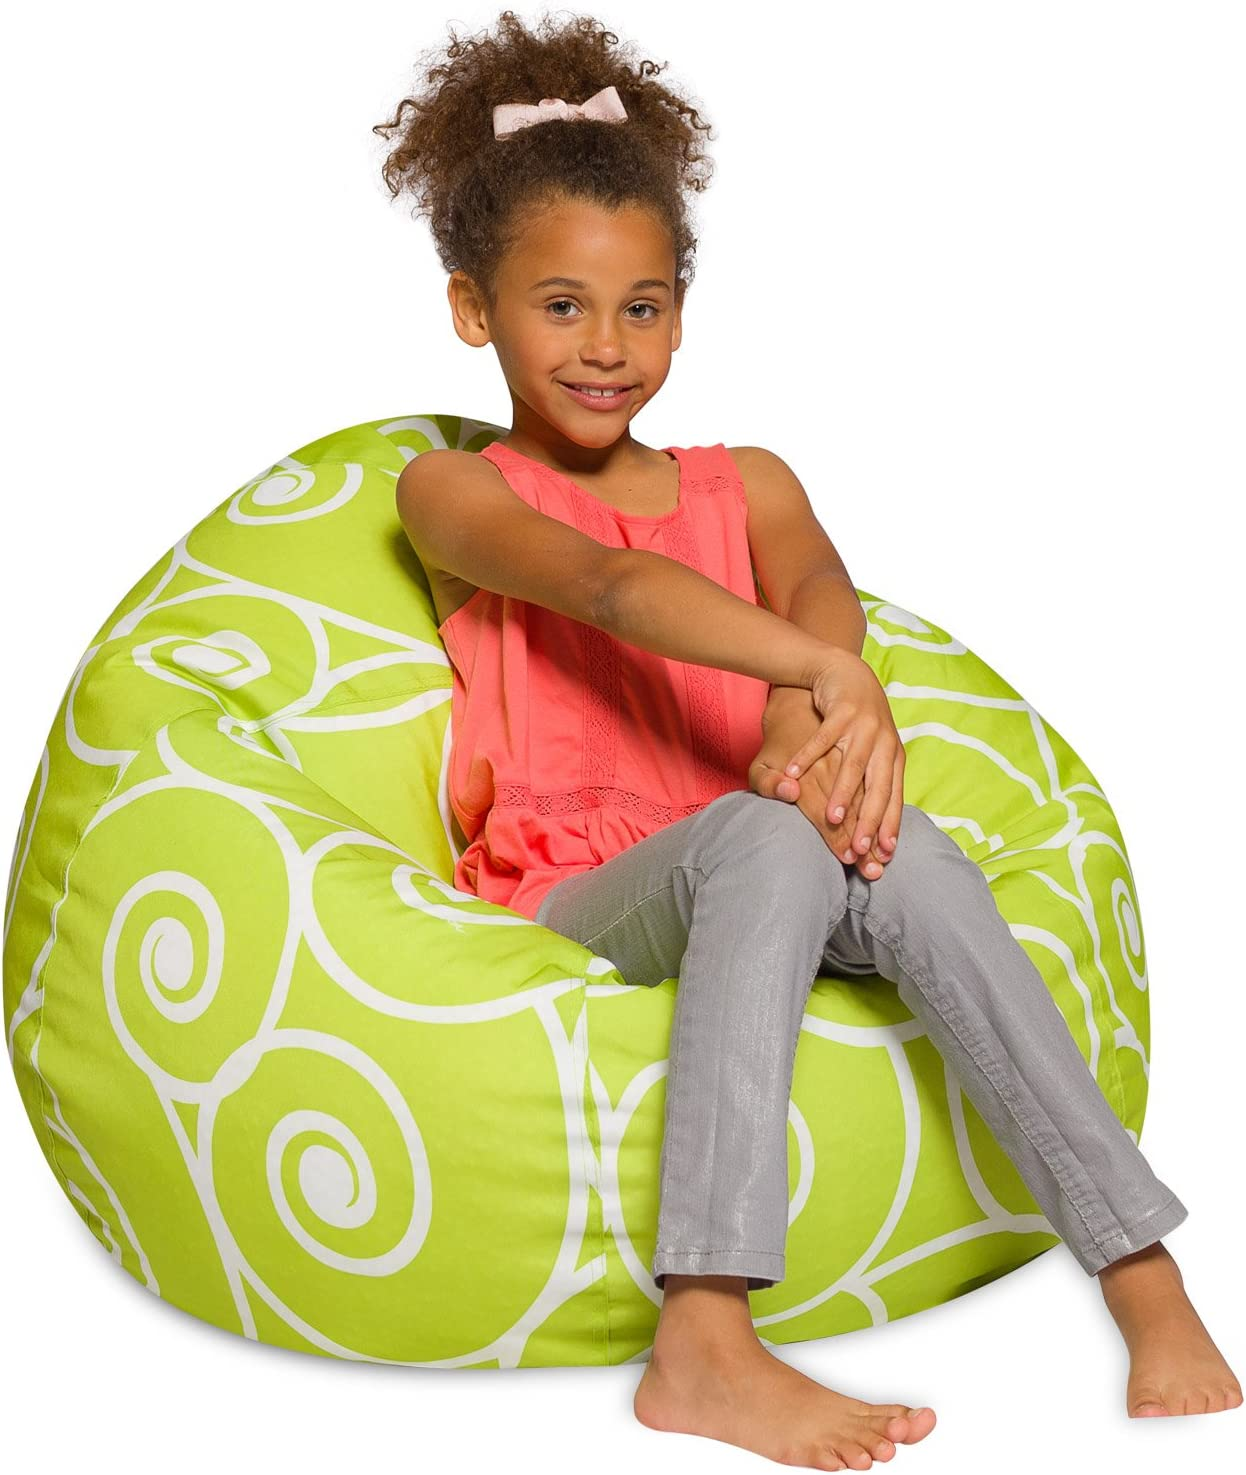 Posh Creations Big Comfy Bean Bag Posh Large Beanbag Chairs with Removable Cover for Kids, Teens and Adults Polyester Cloth Puff Sack Lounger Furniture for All Ages, 38in, Swirls Lime and White